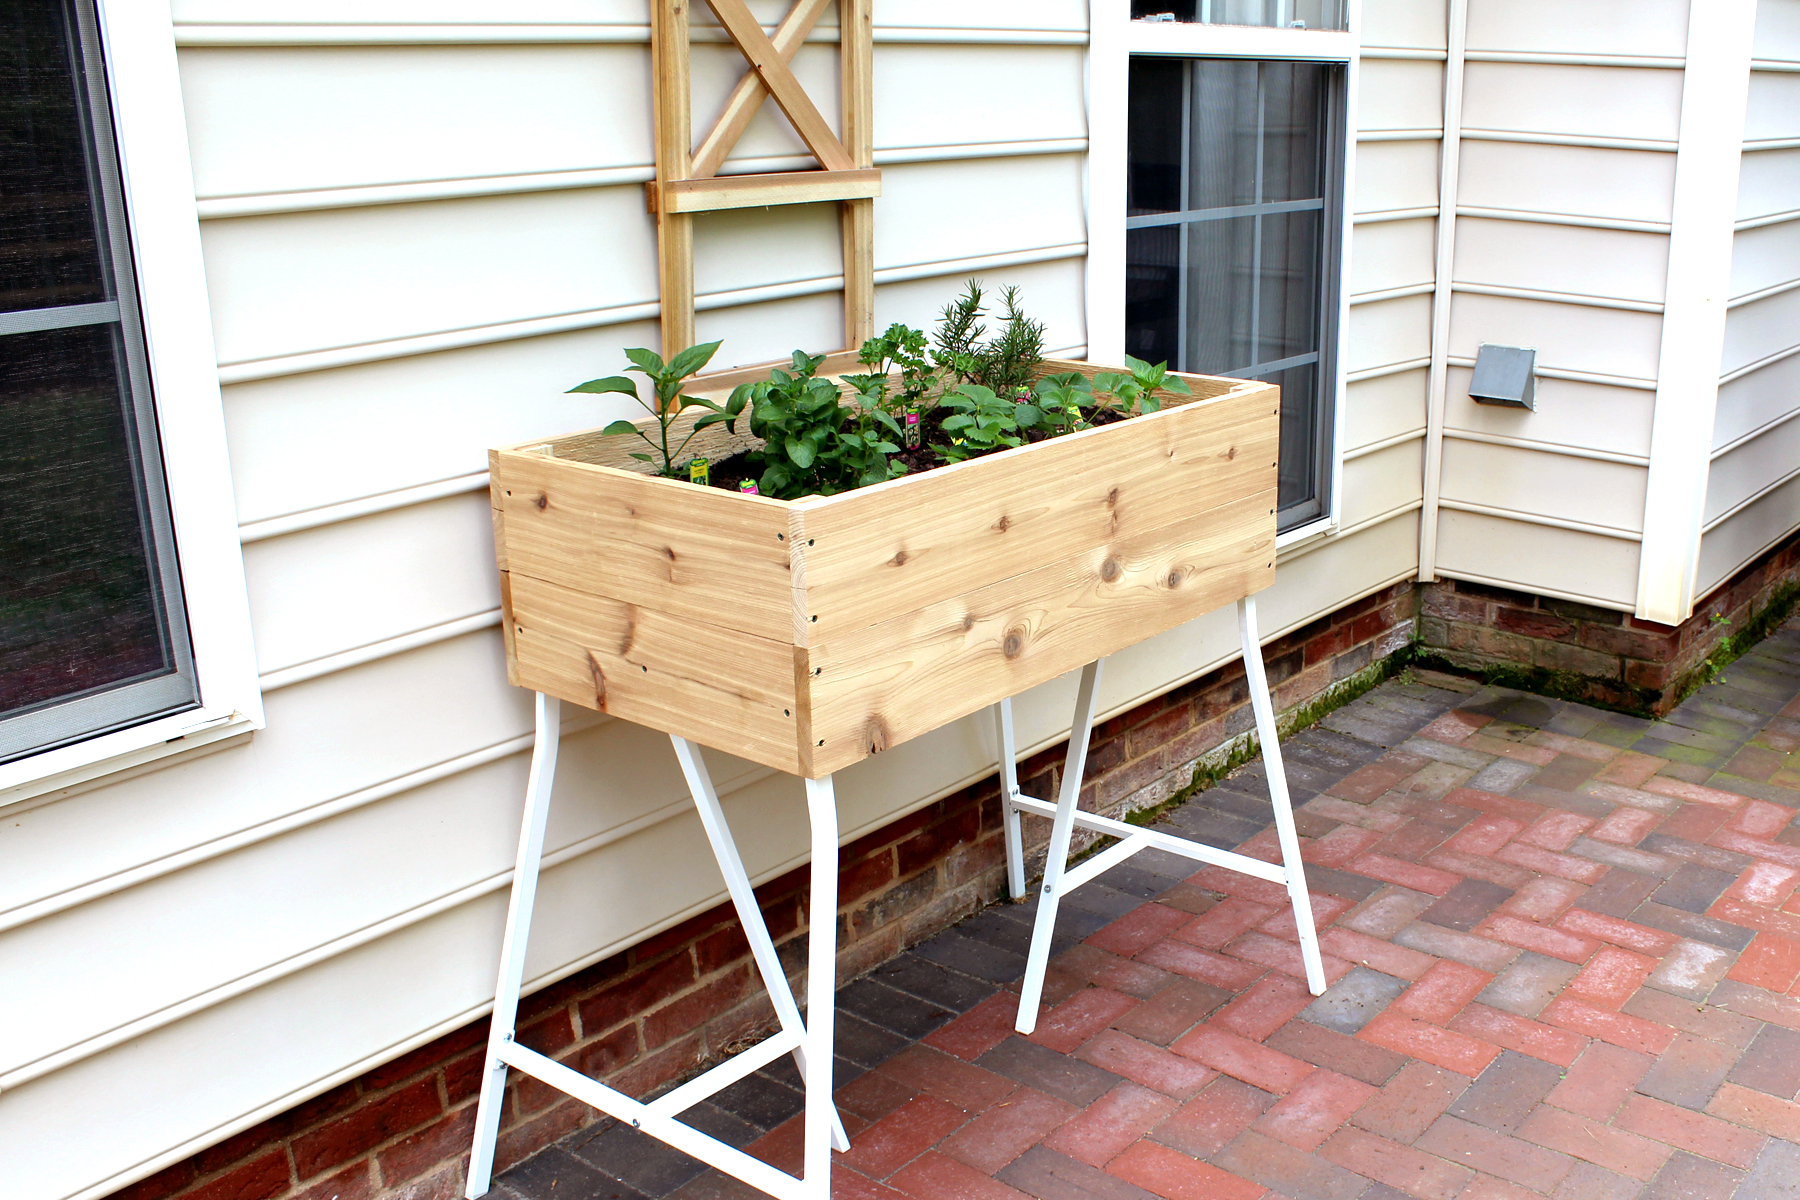 how to build a container garden from cedar and IKEA trestle legs